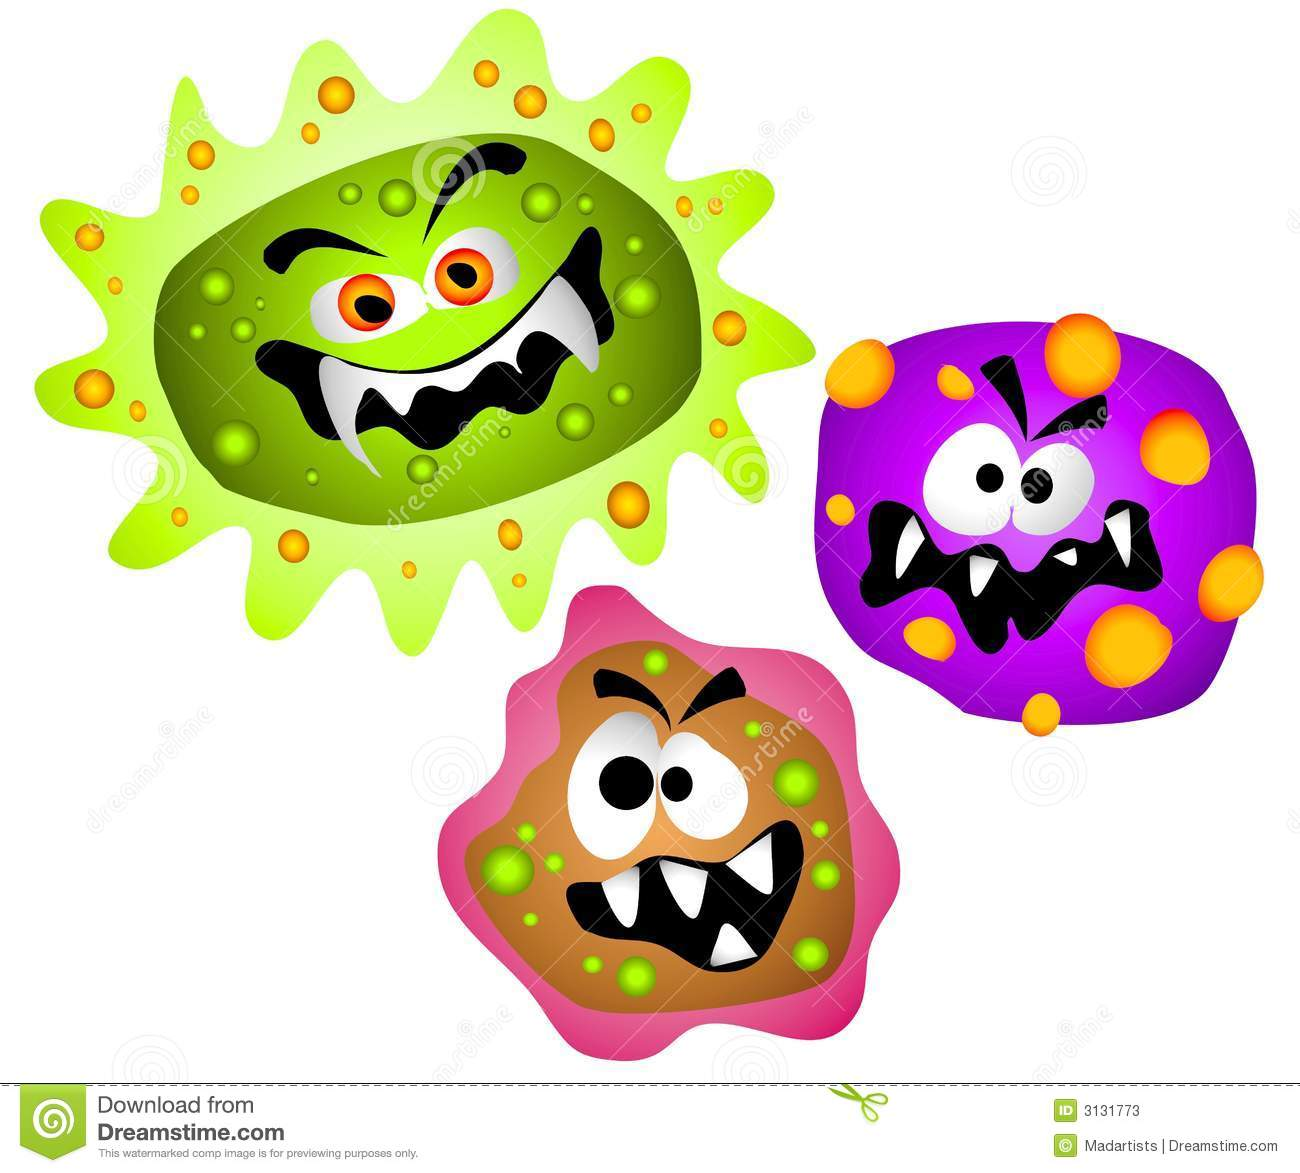 Clip art cartoon illustration of nasty looking germs viruses or